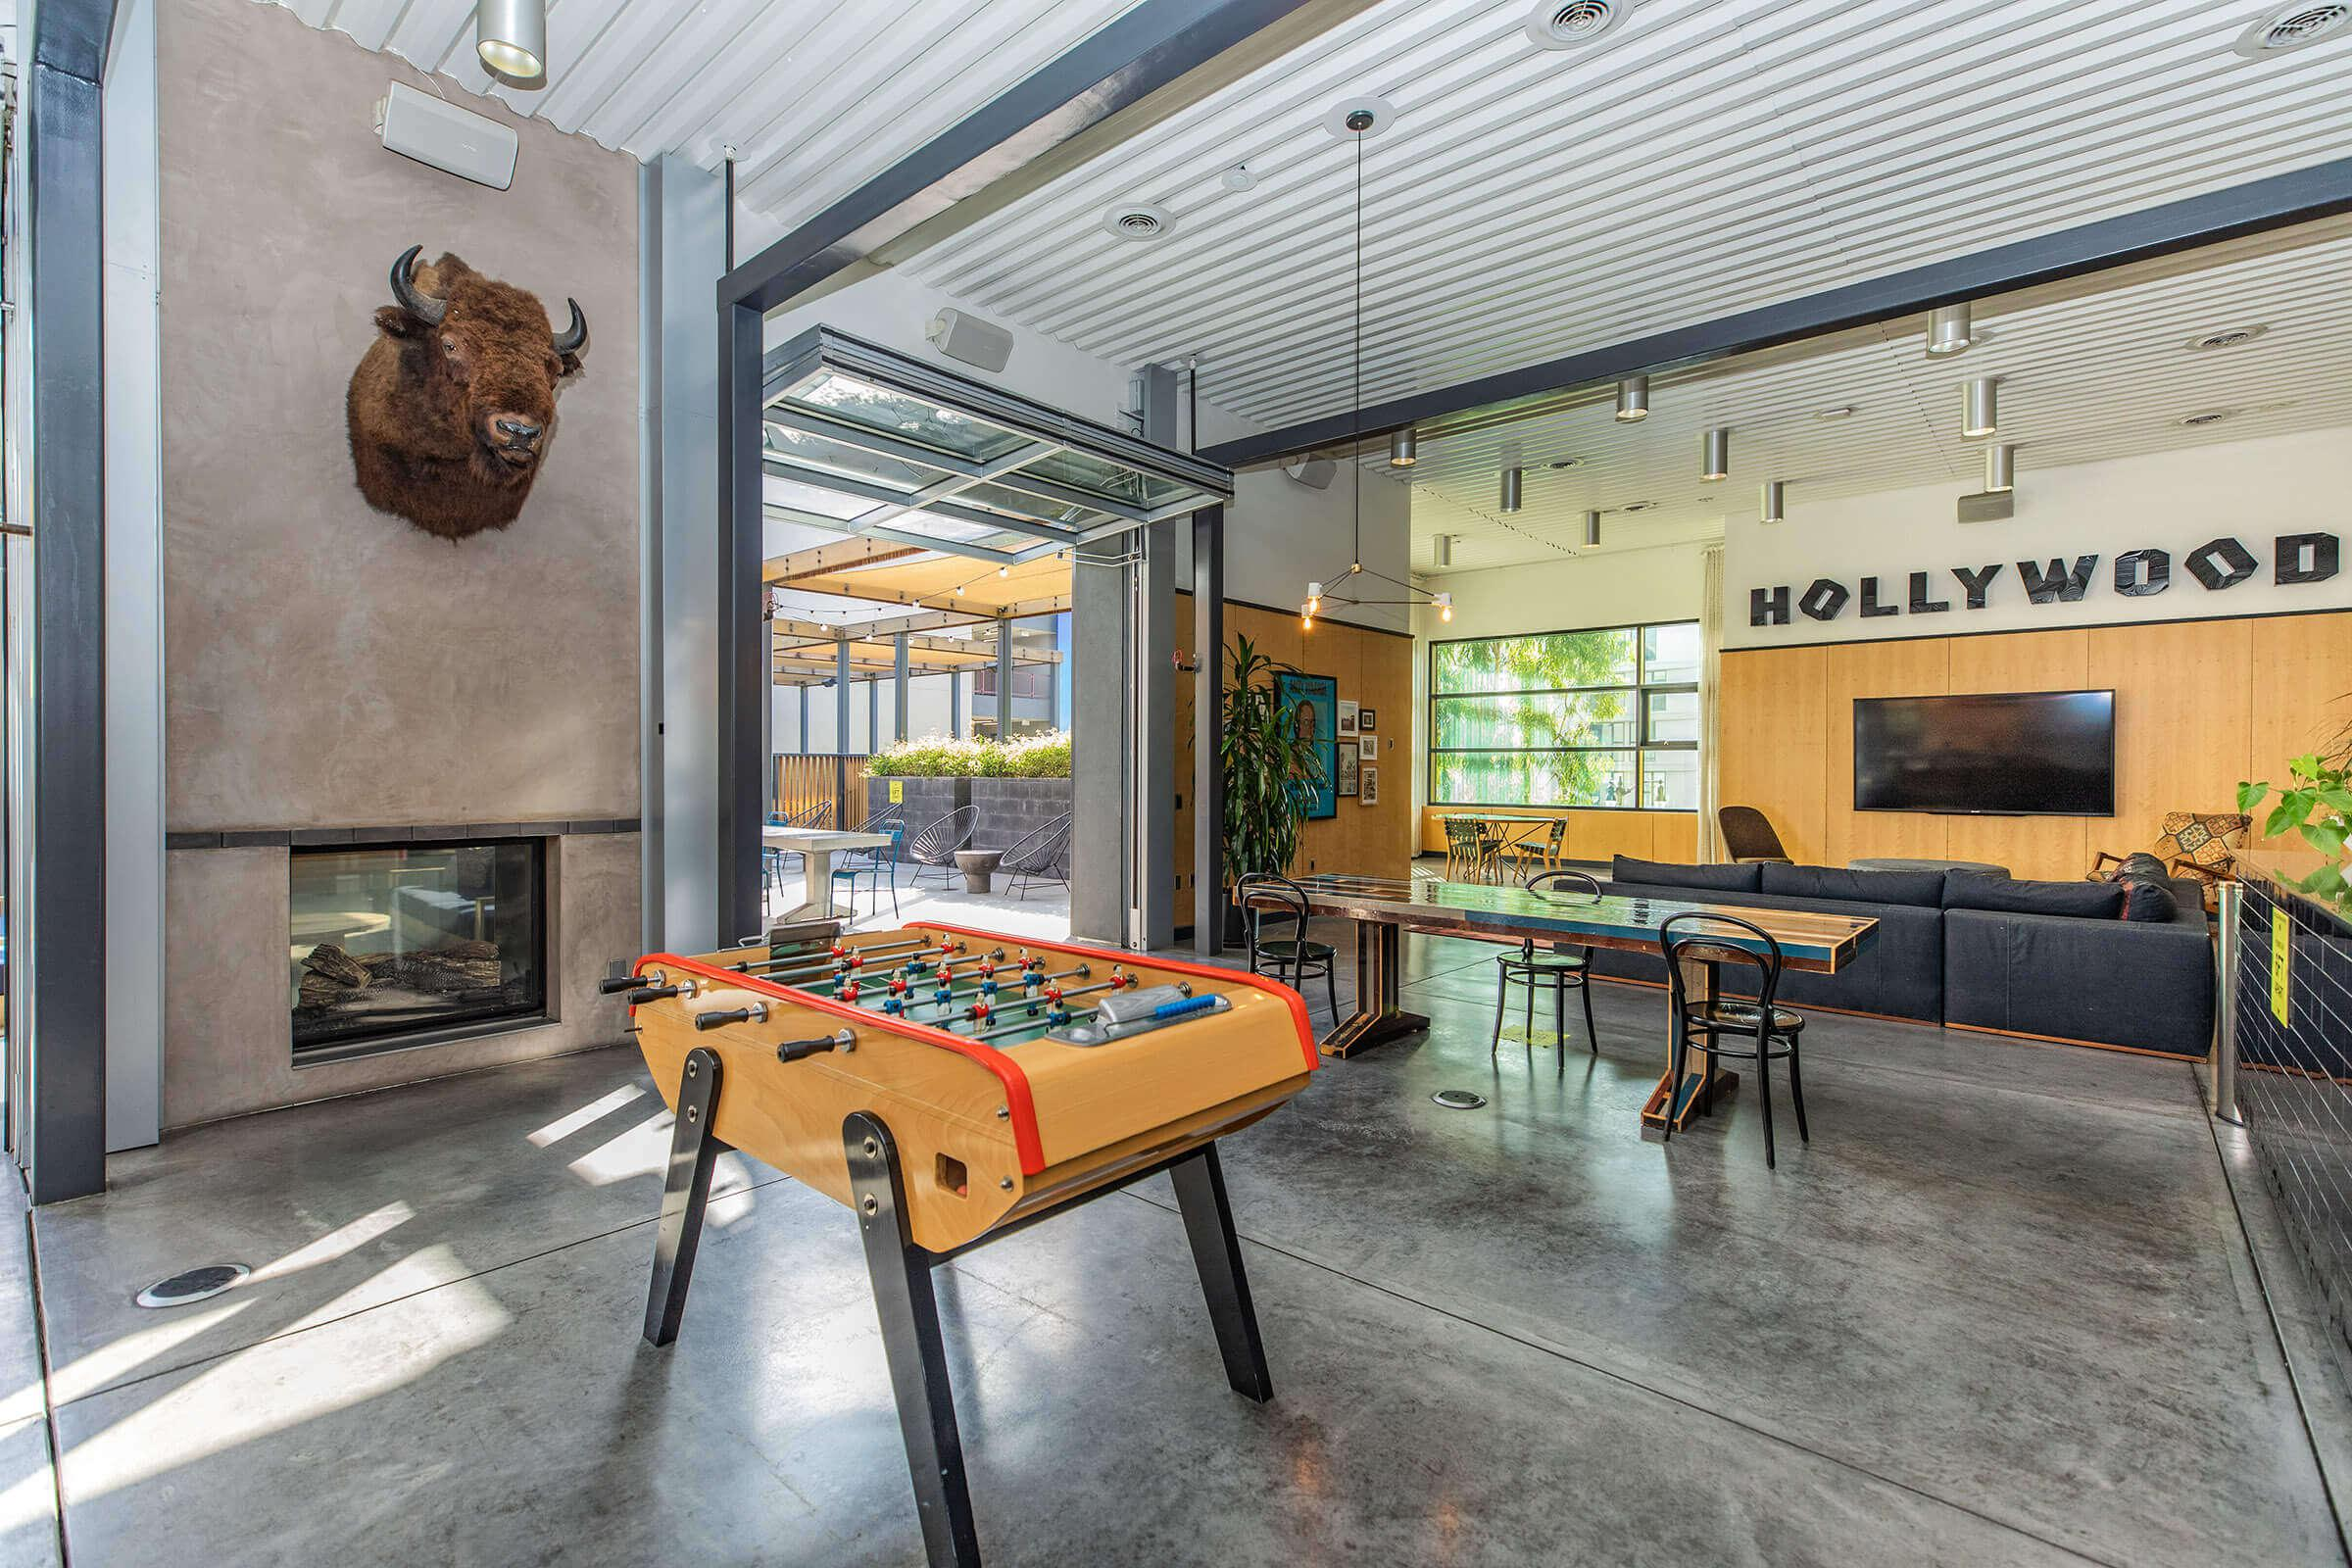 Eastown Apartments community room with a foosball table